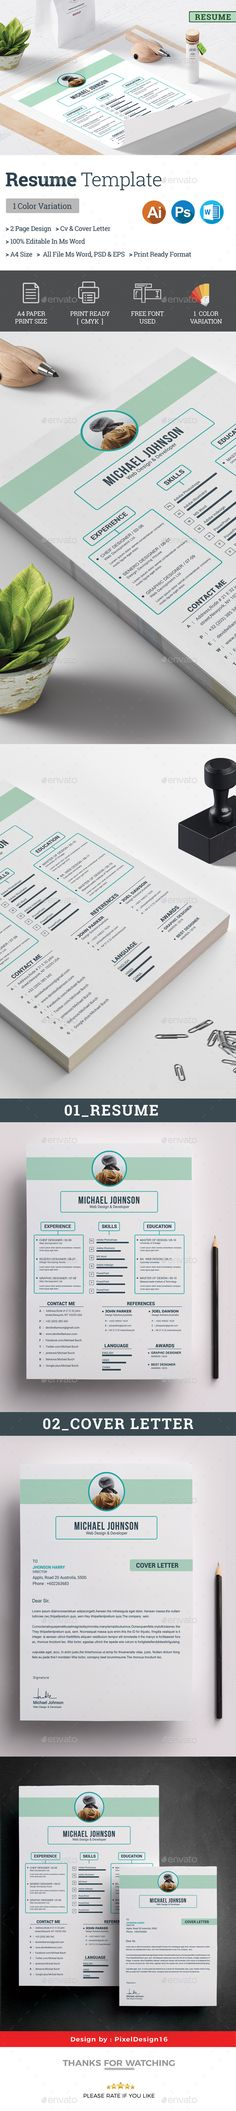 Resume Cv resume template and Template